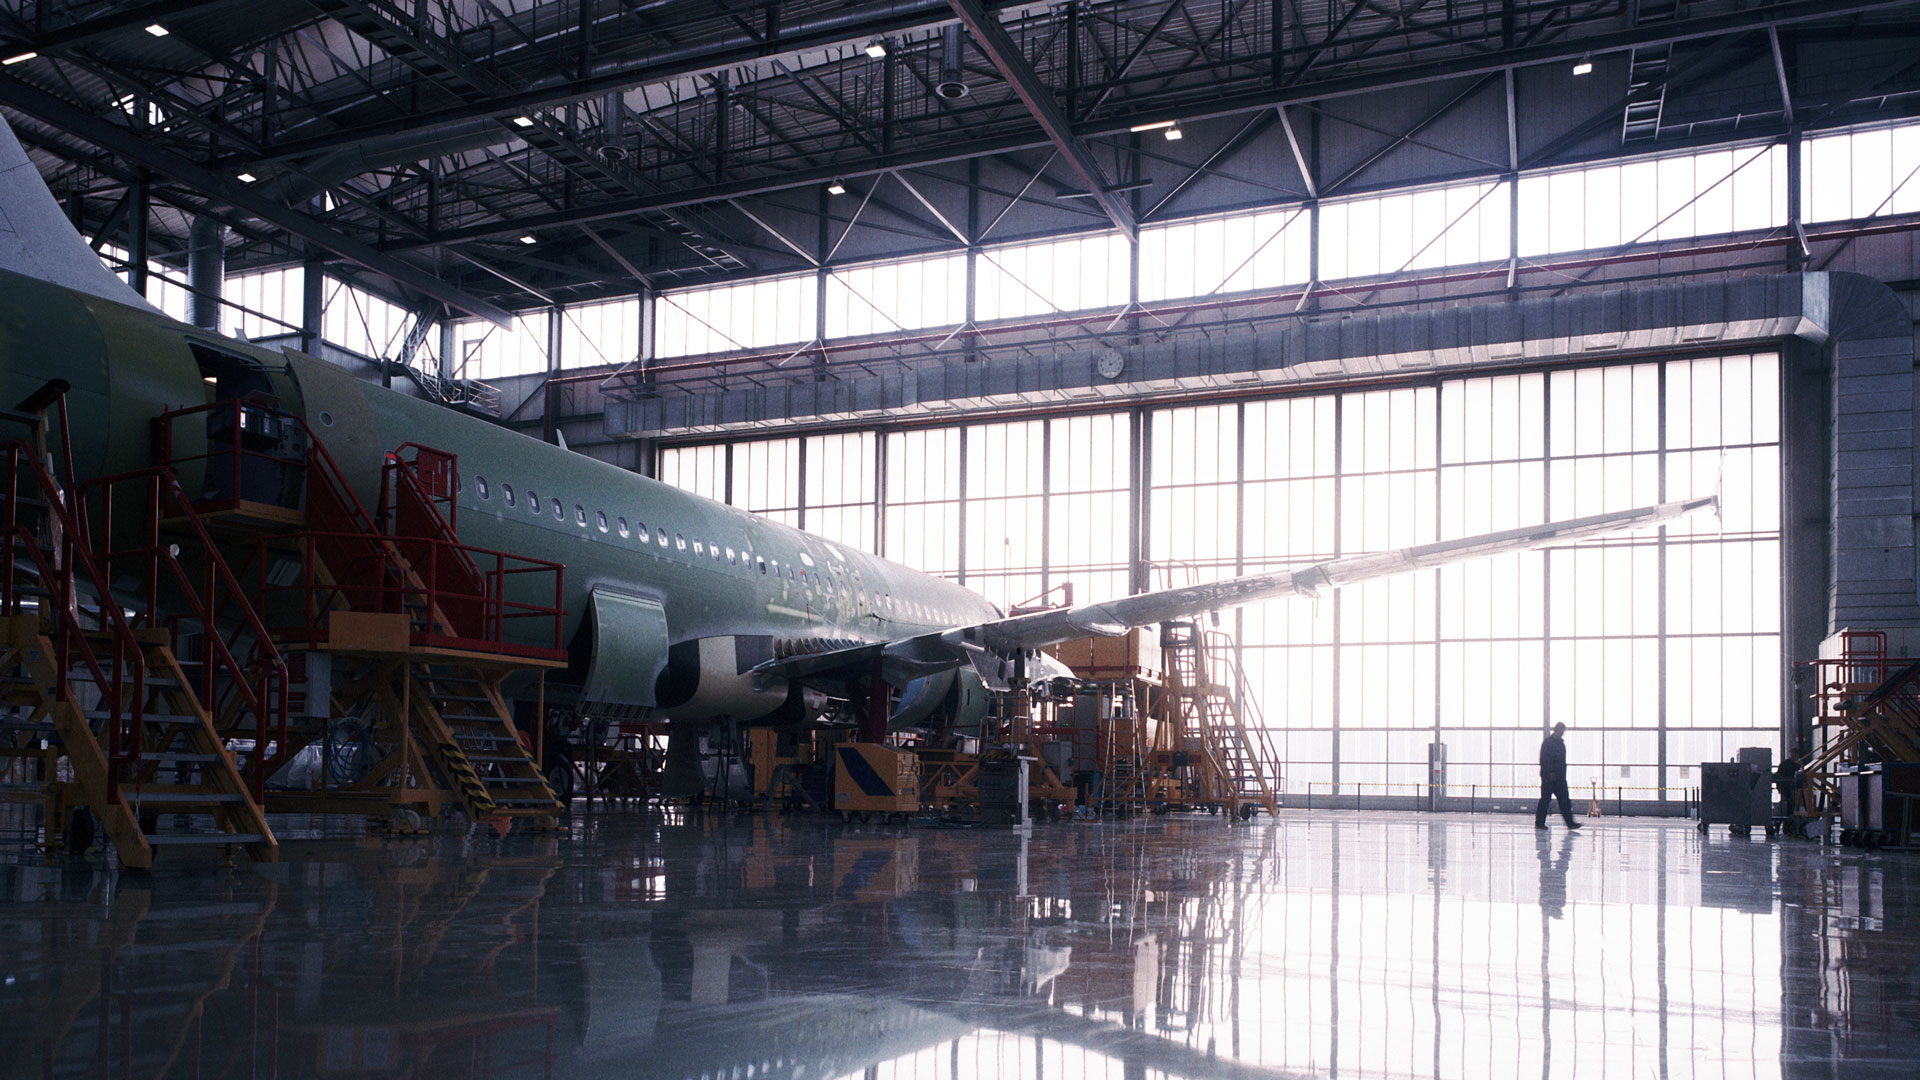 With an influx of Aircraft storage, will there be an increased strain on parts supply?